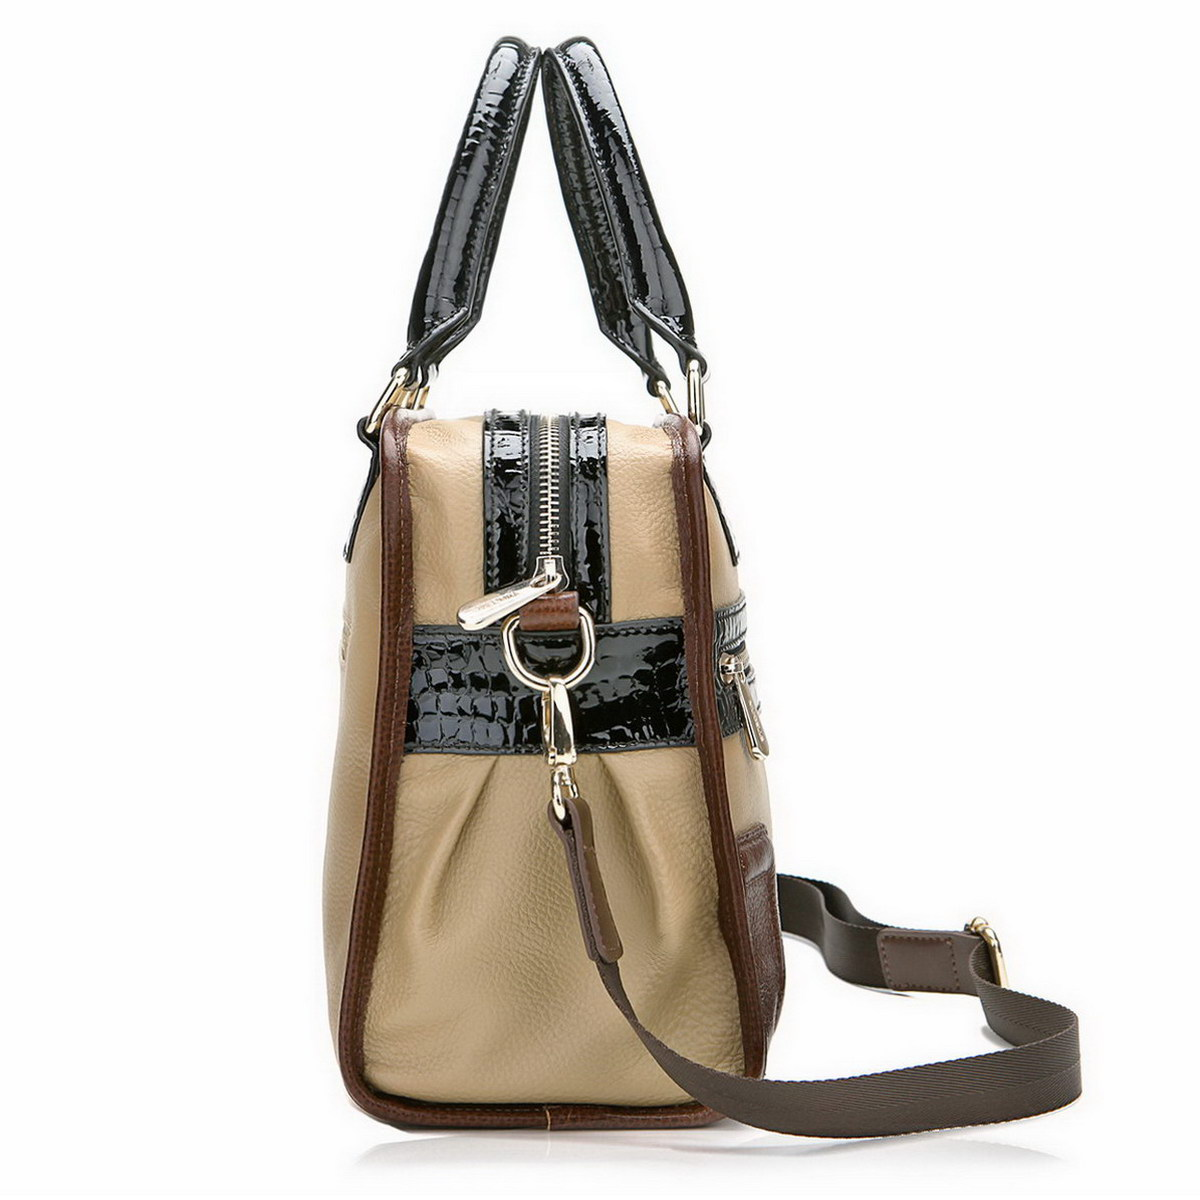 Find great deals on eBay for cheap leather totes. Shop with confidence.